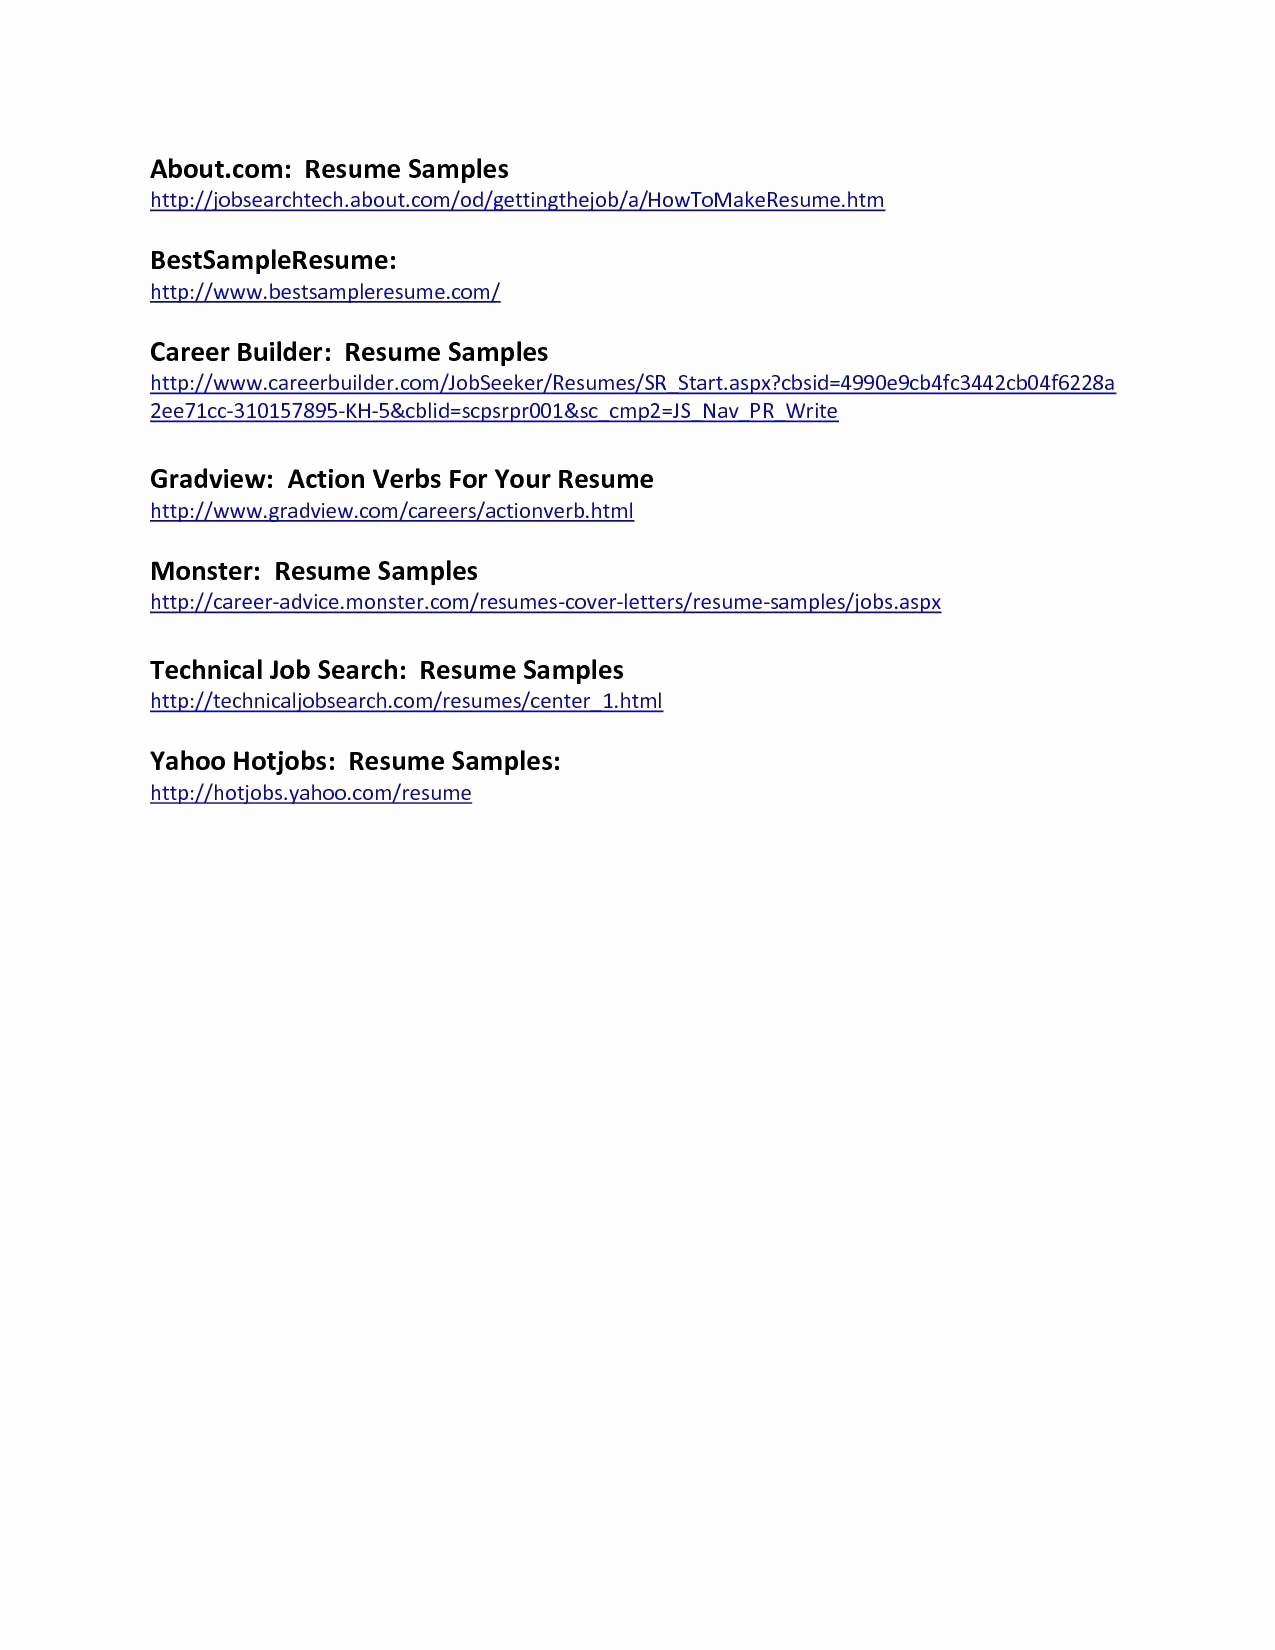 Resume Writer Reviews - Sample Resume for Experienced Banking Professional Inspirational